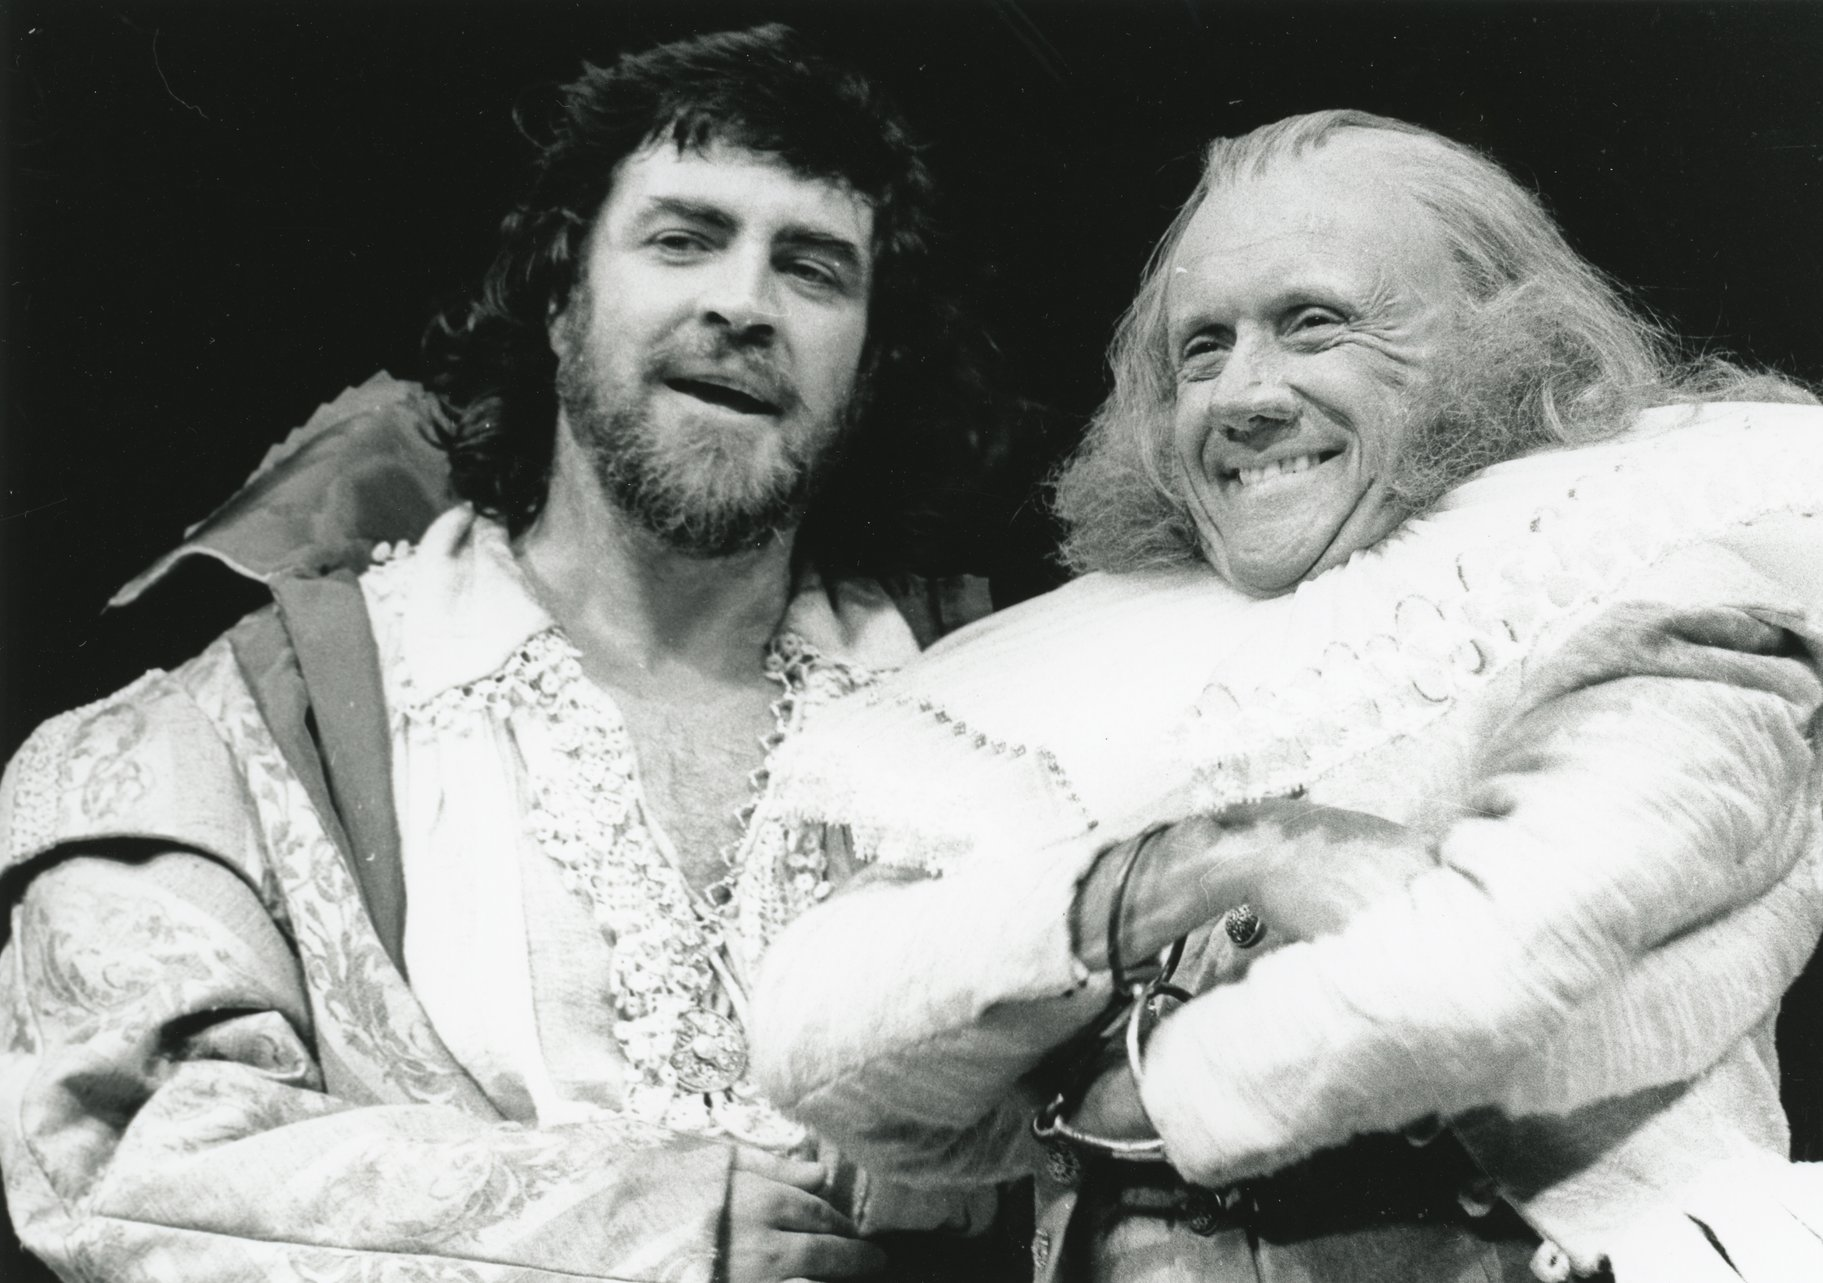 Petruchio and Baptista in the 1973 production of The Taming of The Shrew